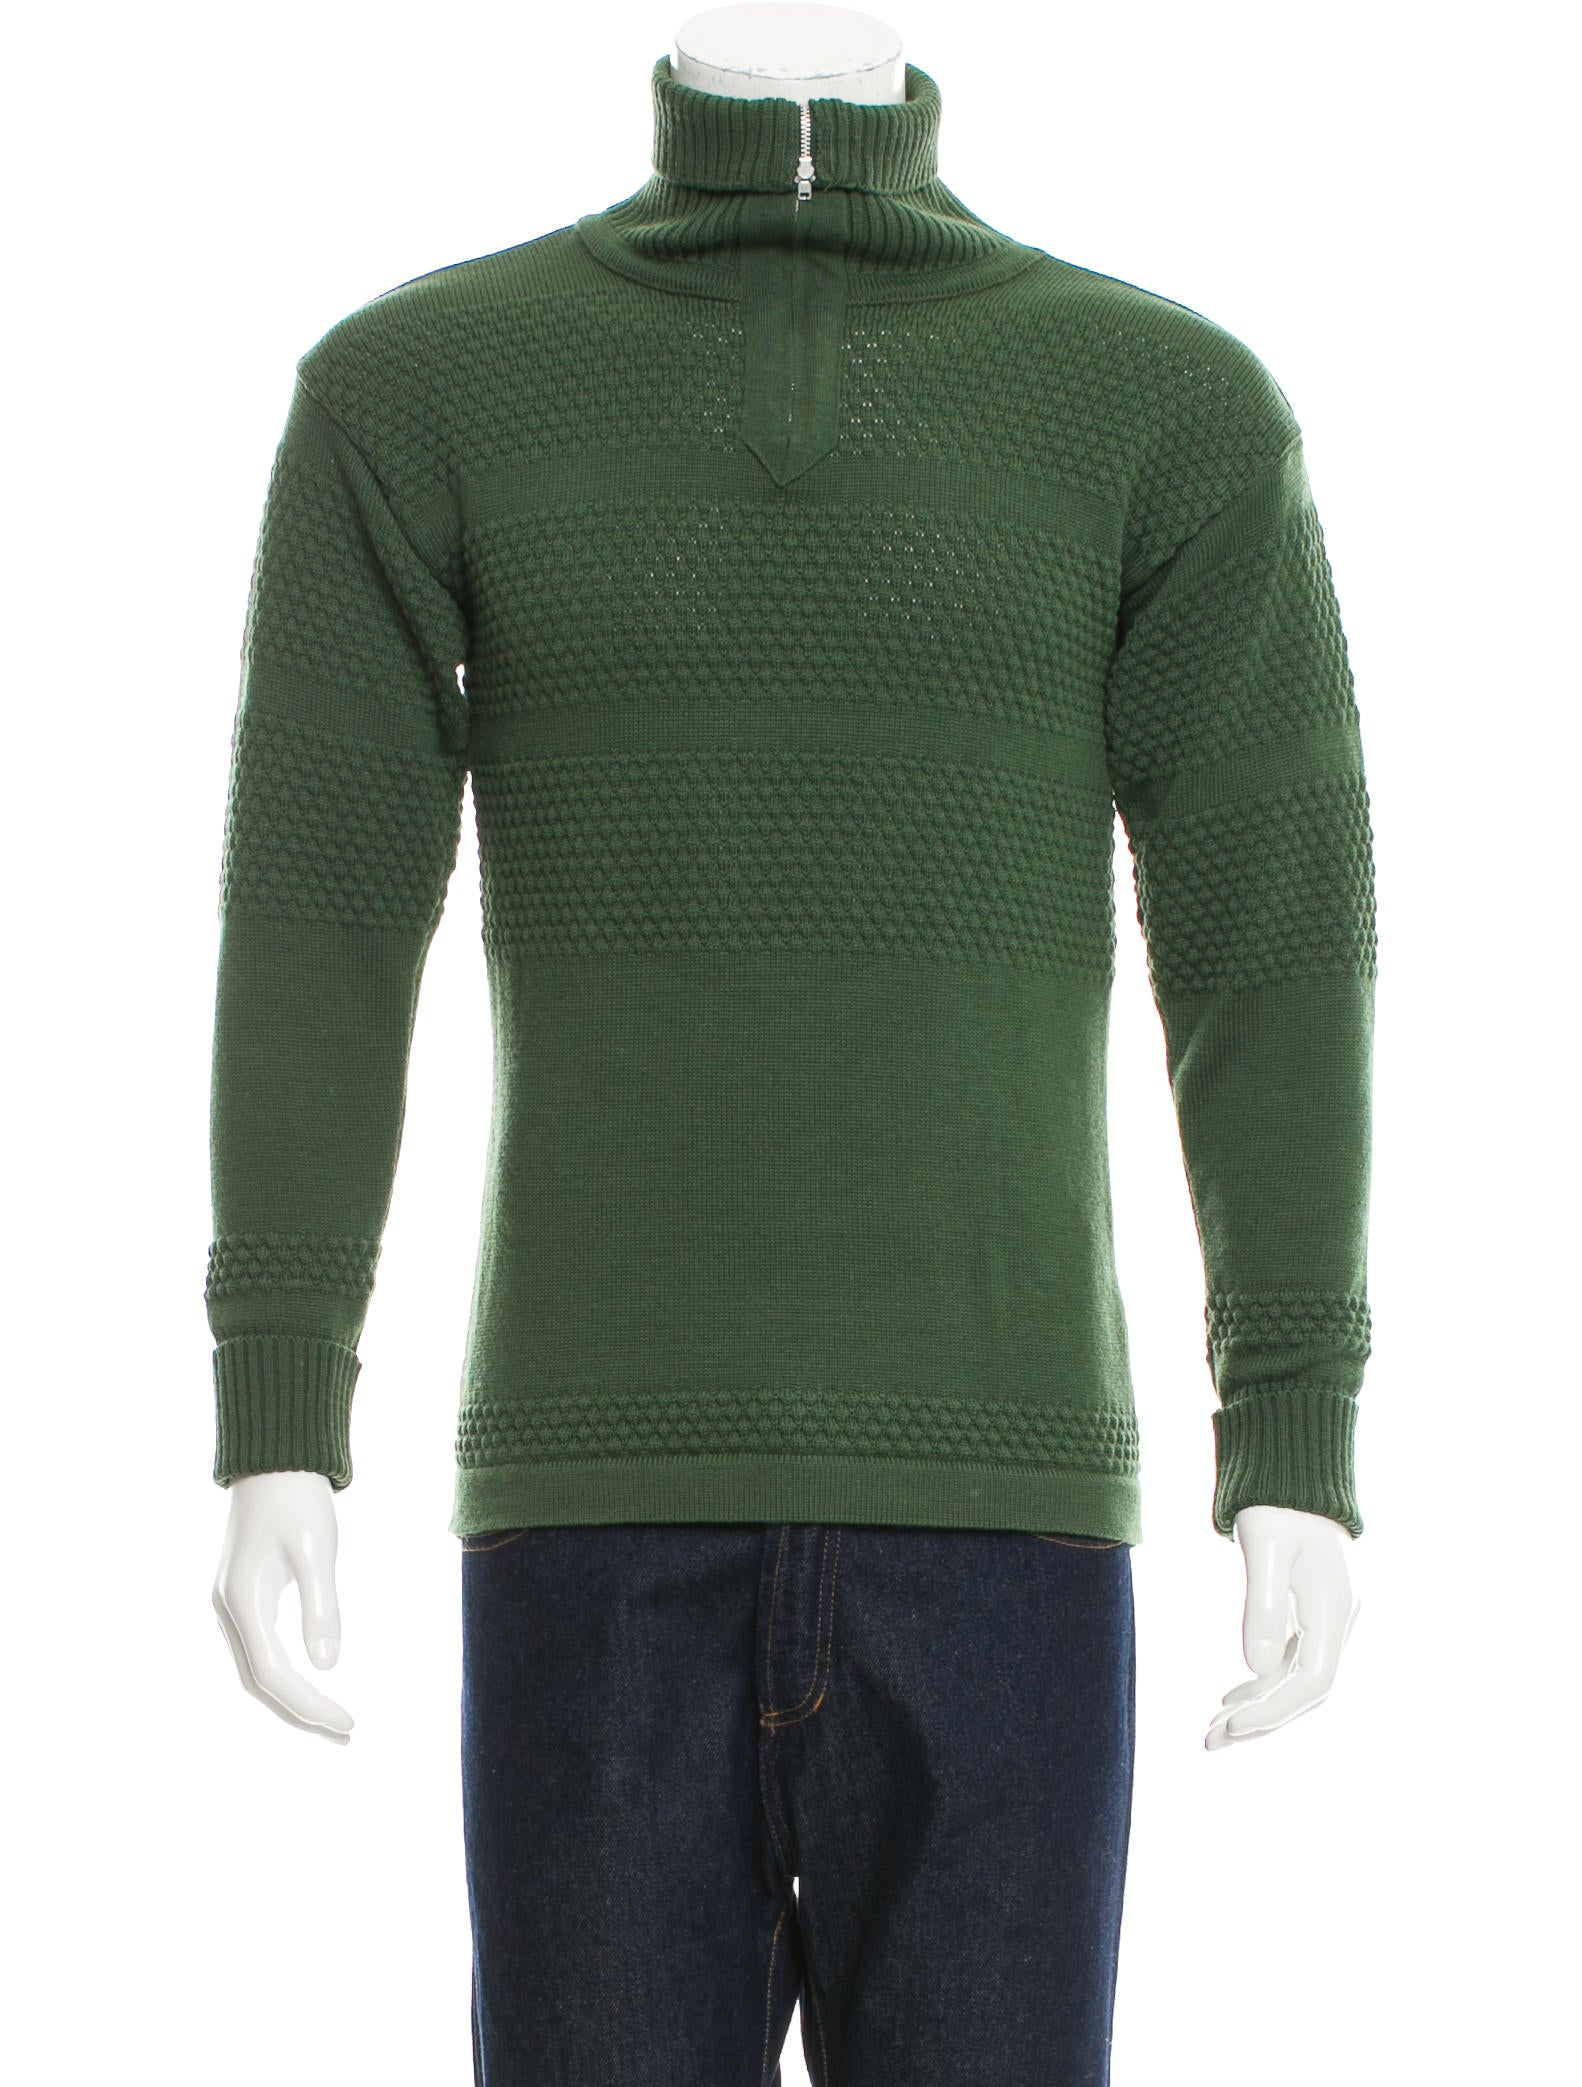 S.N.S. Herning Wool Half-Zip Sweater - Clothing - W3S20058 | The RealReal